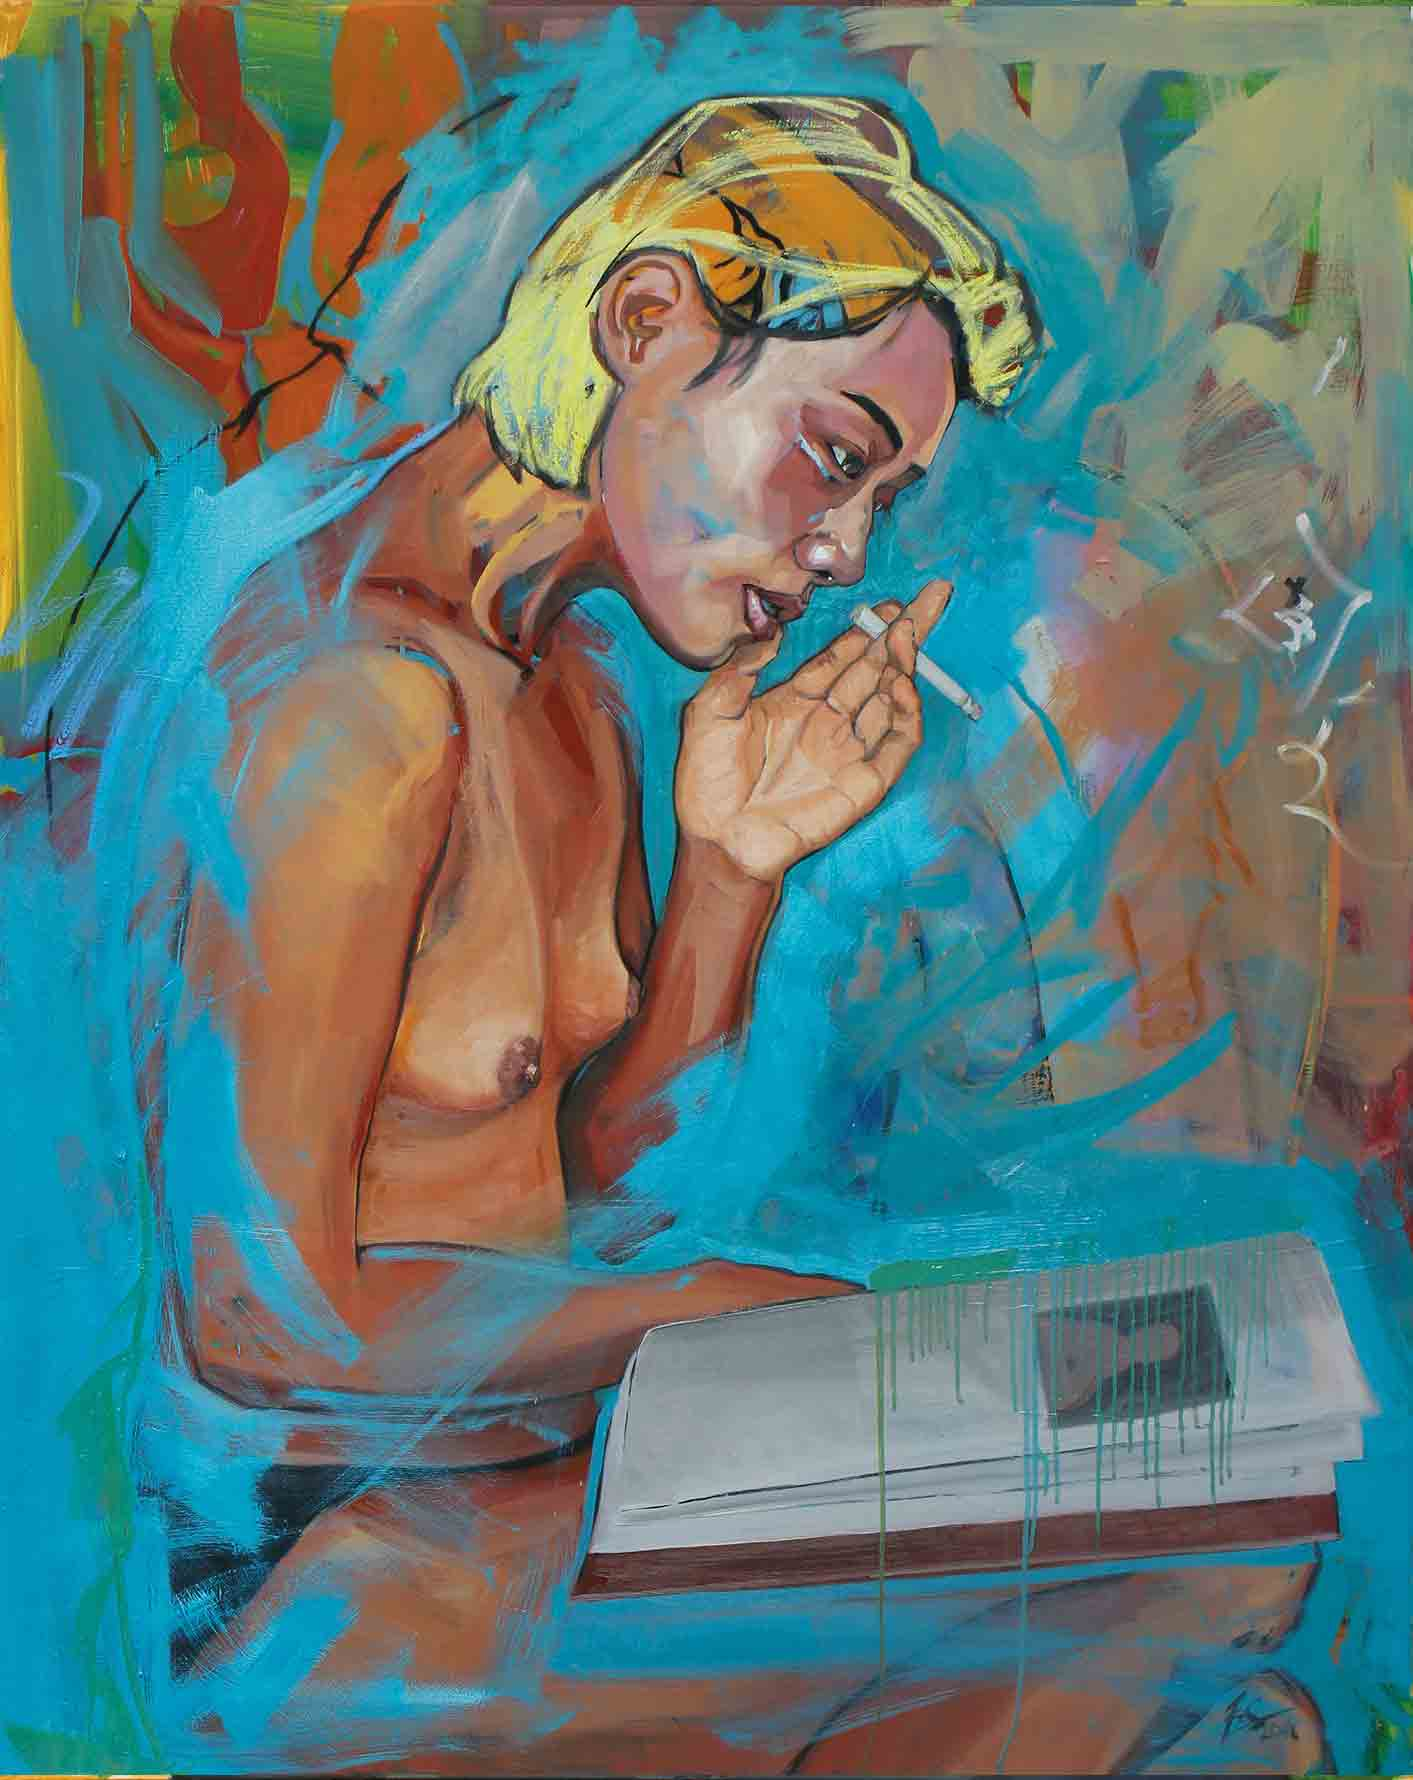 She reads, She smokes, Oil on Canvas 120x150cm